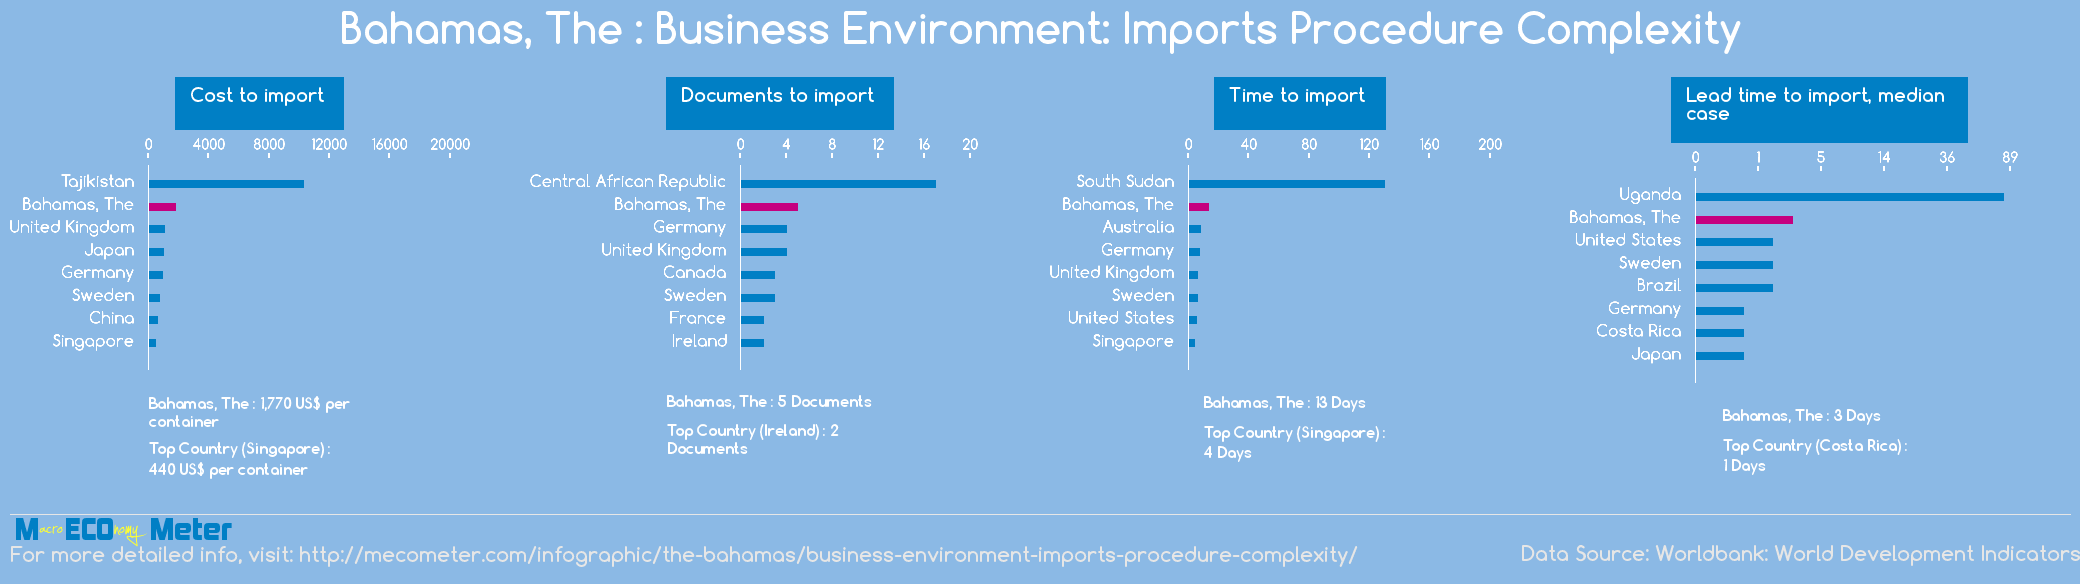 Bahamas, The : Business Environment: Imports Procedure Complexity